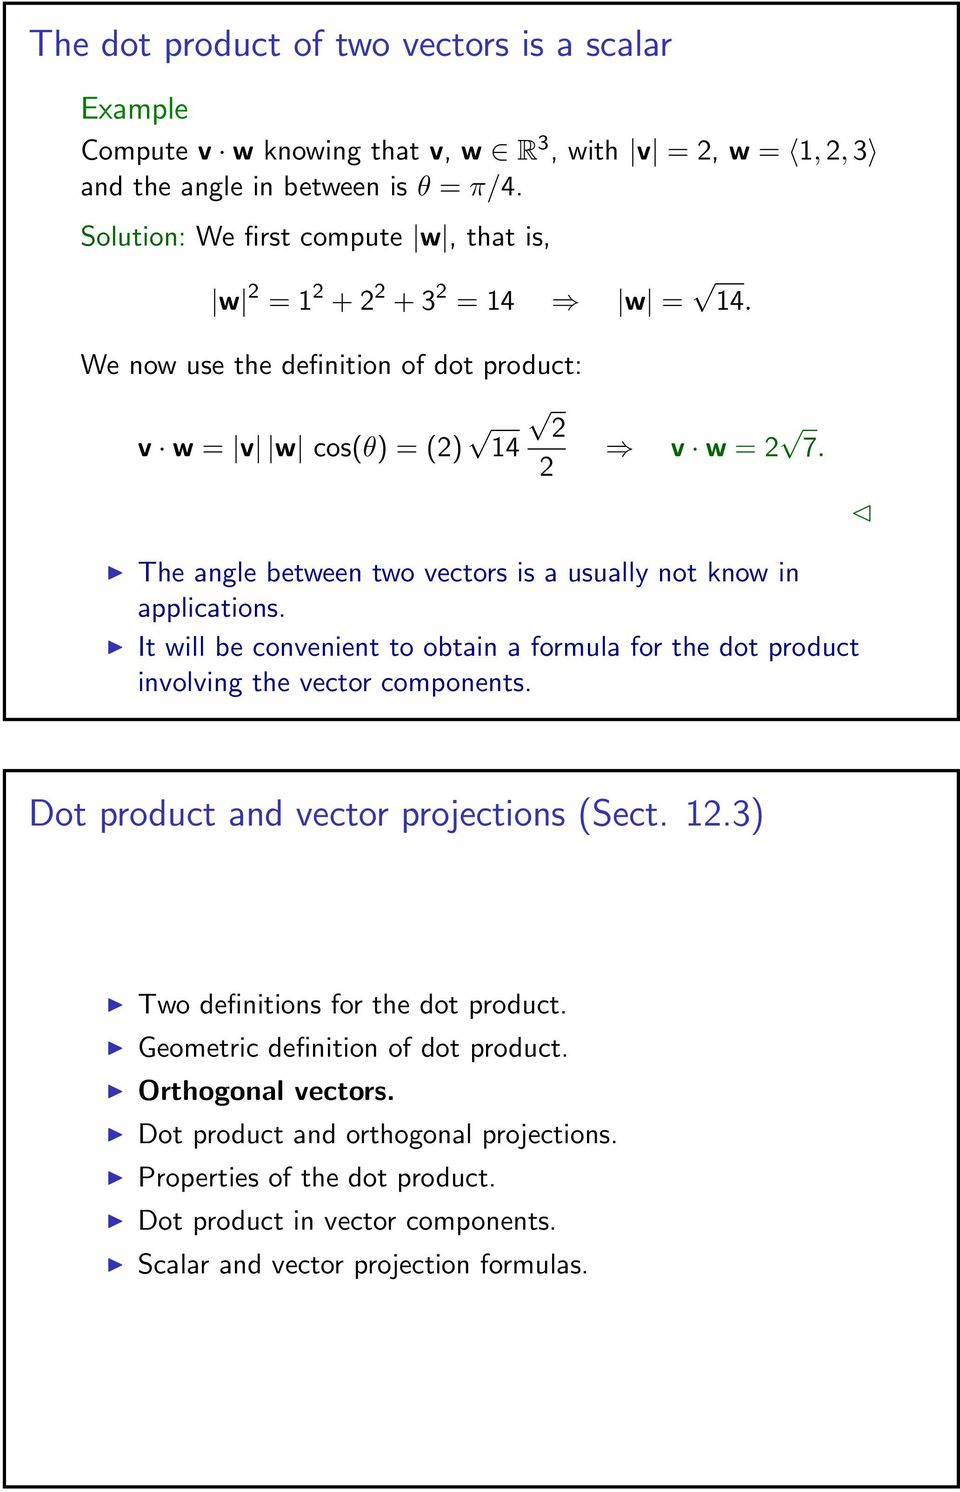 The angle between two vectors is a usually not know in applications. It will be convenient to obtain a formula for the dot product involving the vector components.